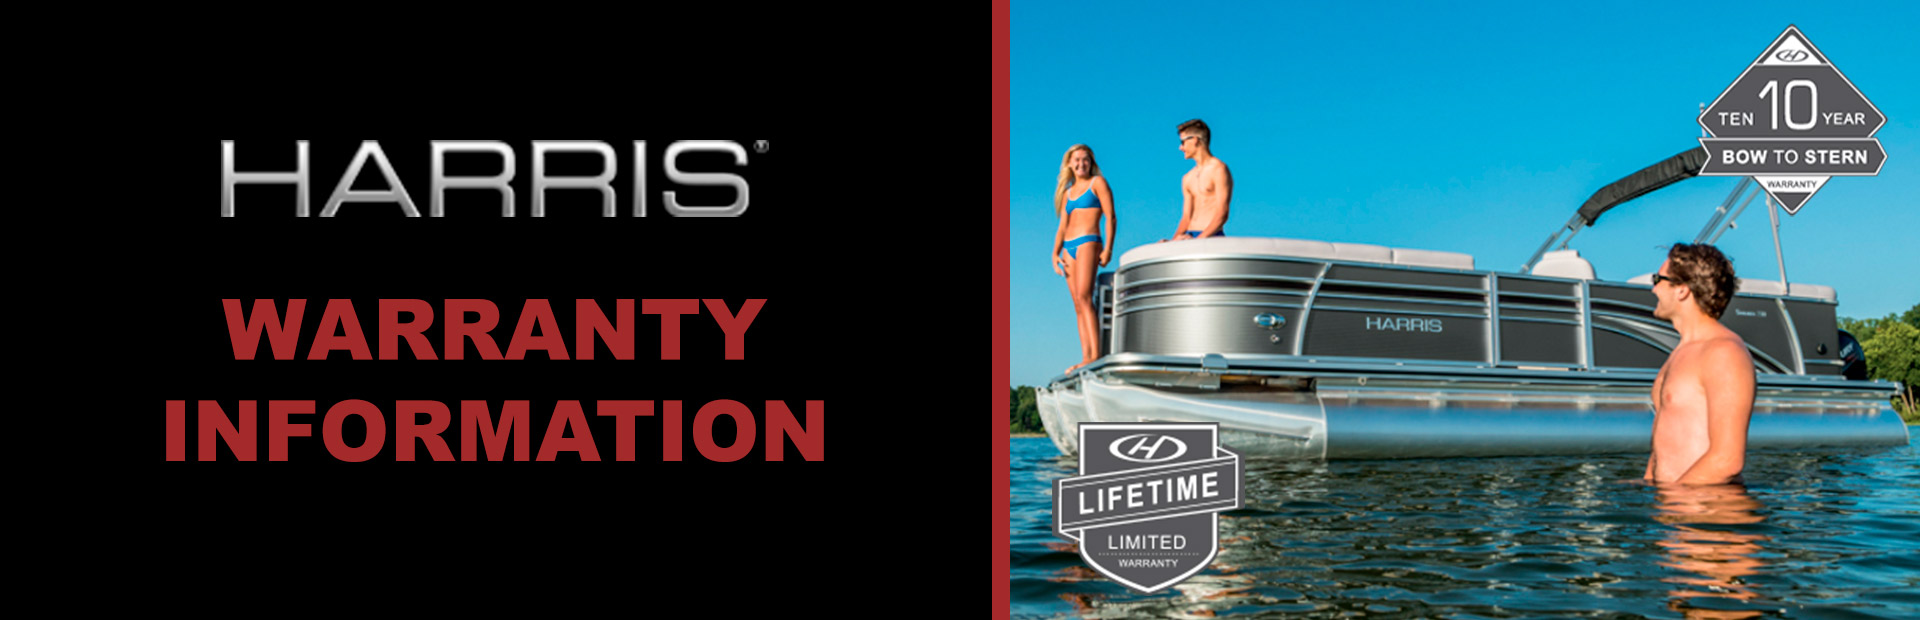 Wilson Marine | Michigan's largest boat dealer | Selling